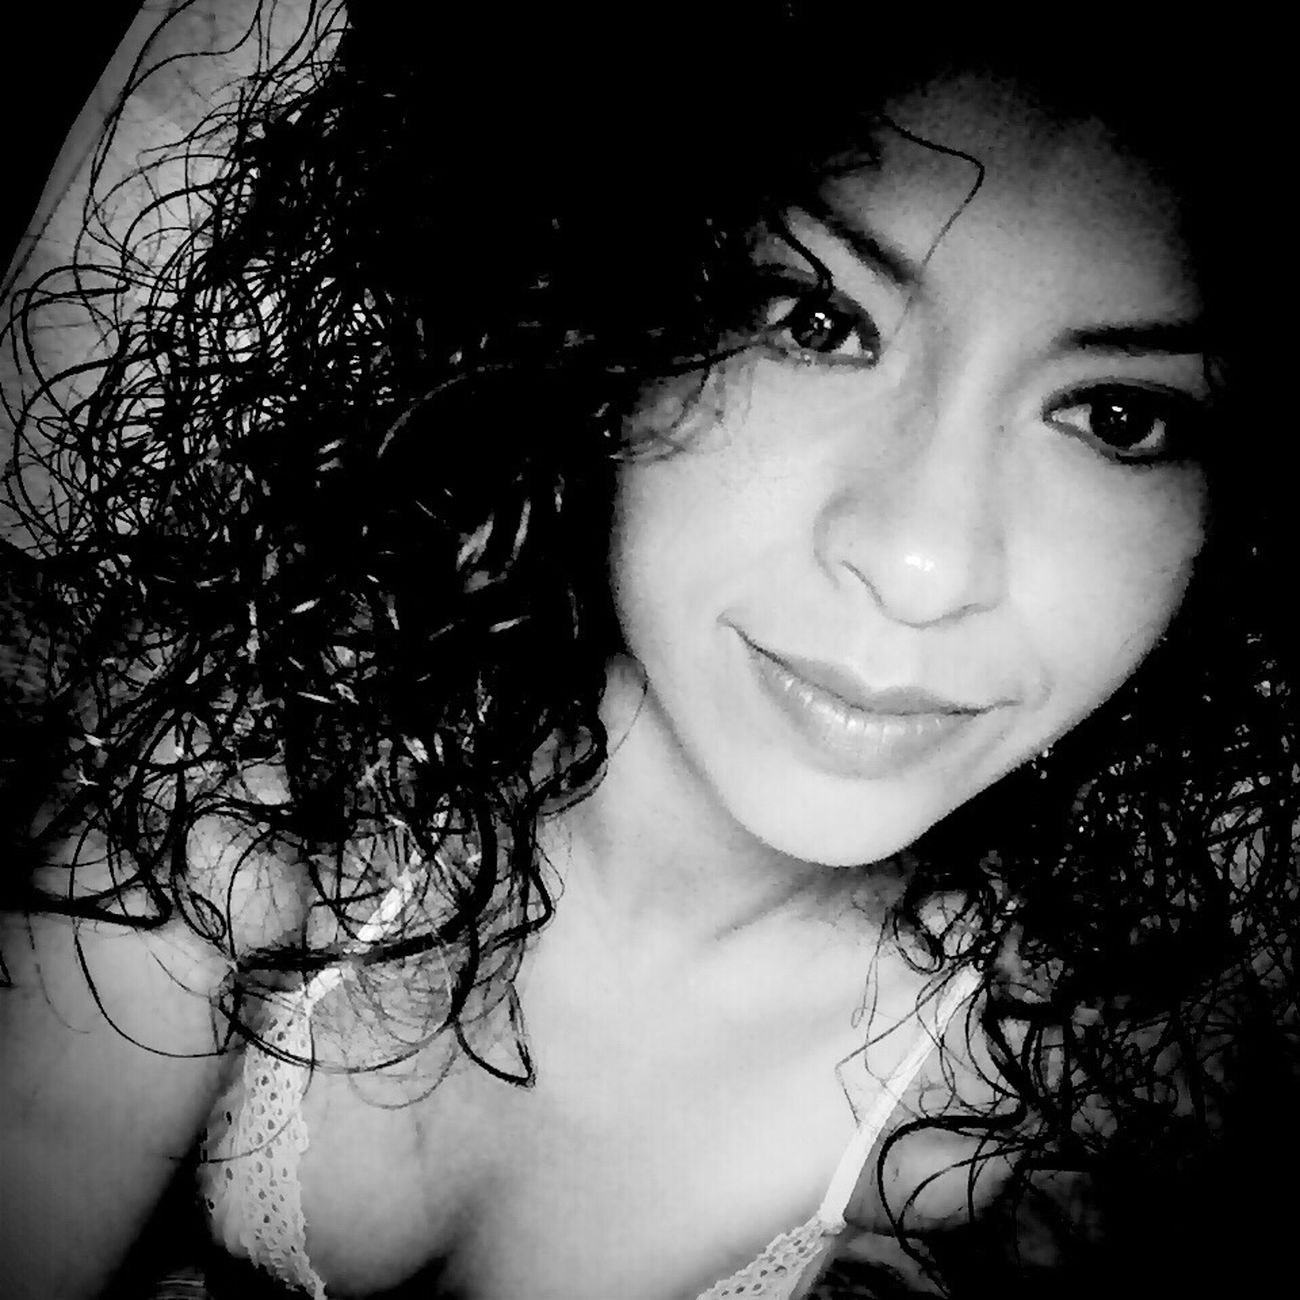 Hora de dormir!!! Curls Goodnight Blancoynegro Pretty Enpijama Love <3 Xoxo Girl Kissssss  Sueño